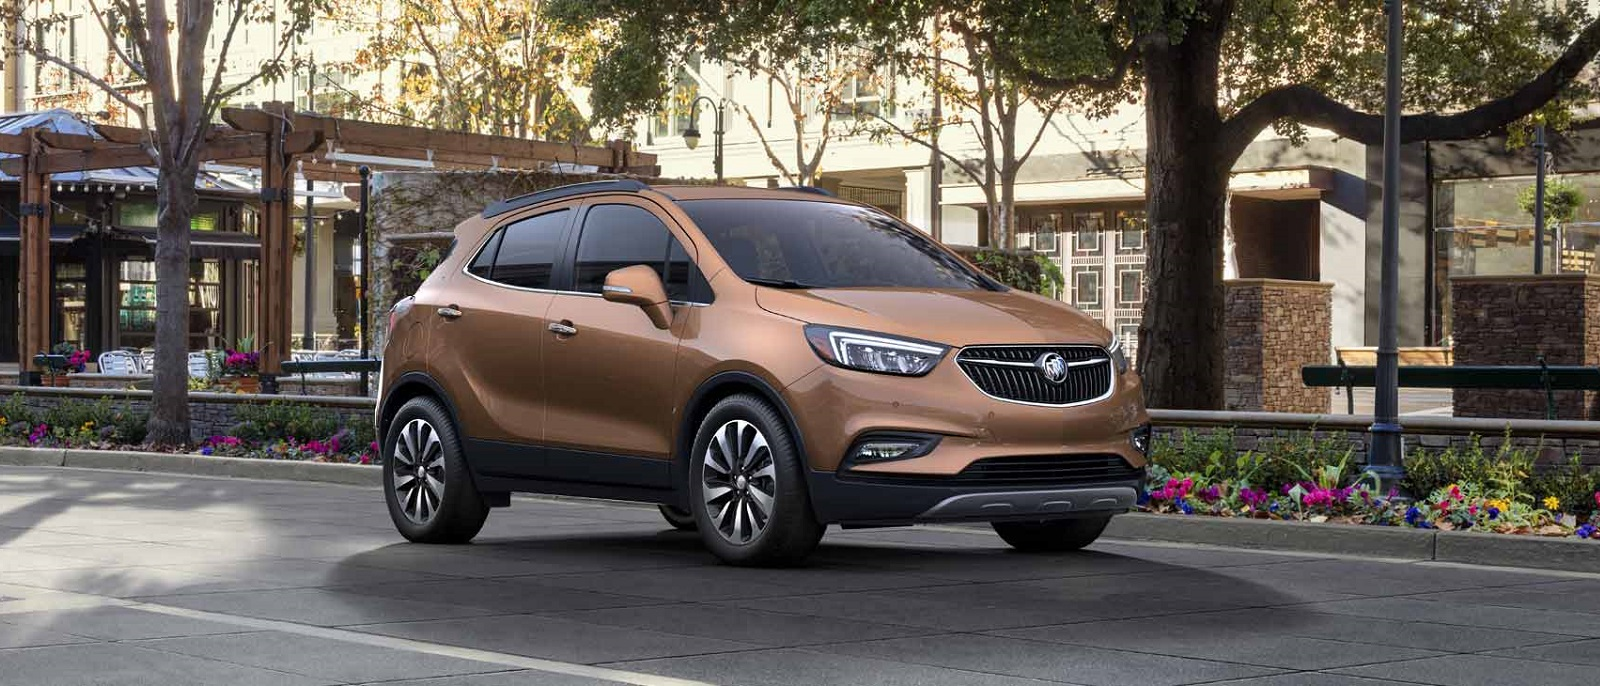 2017 Buick Encore Brown